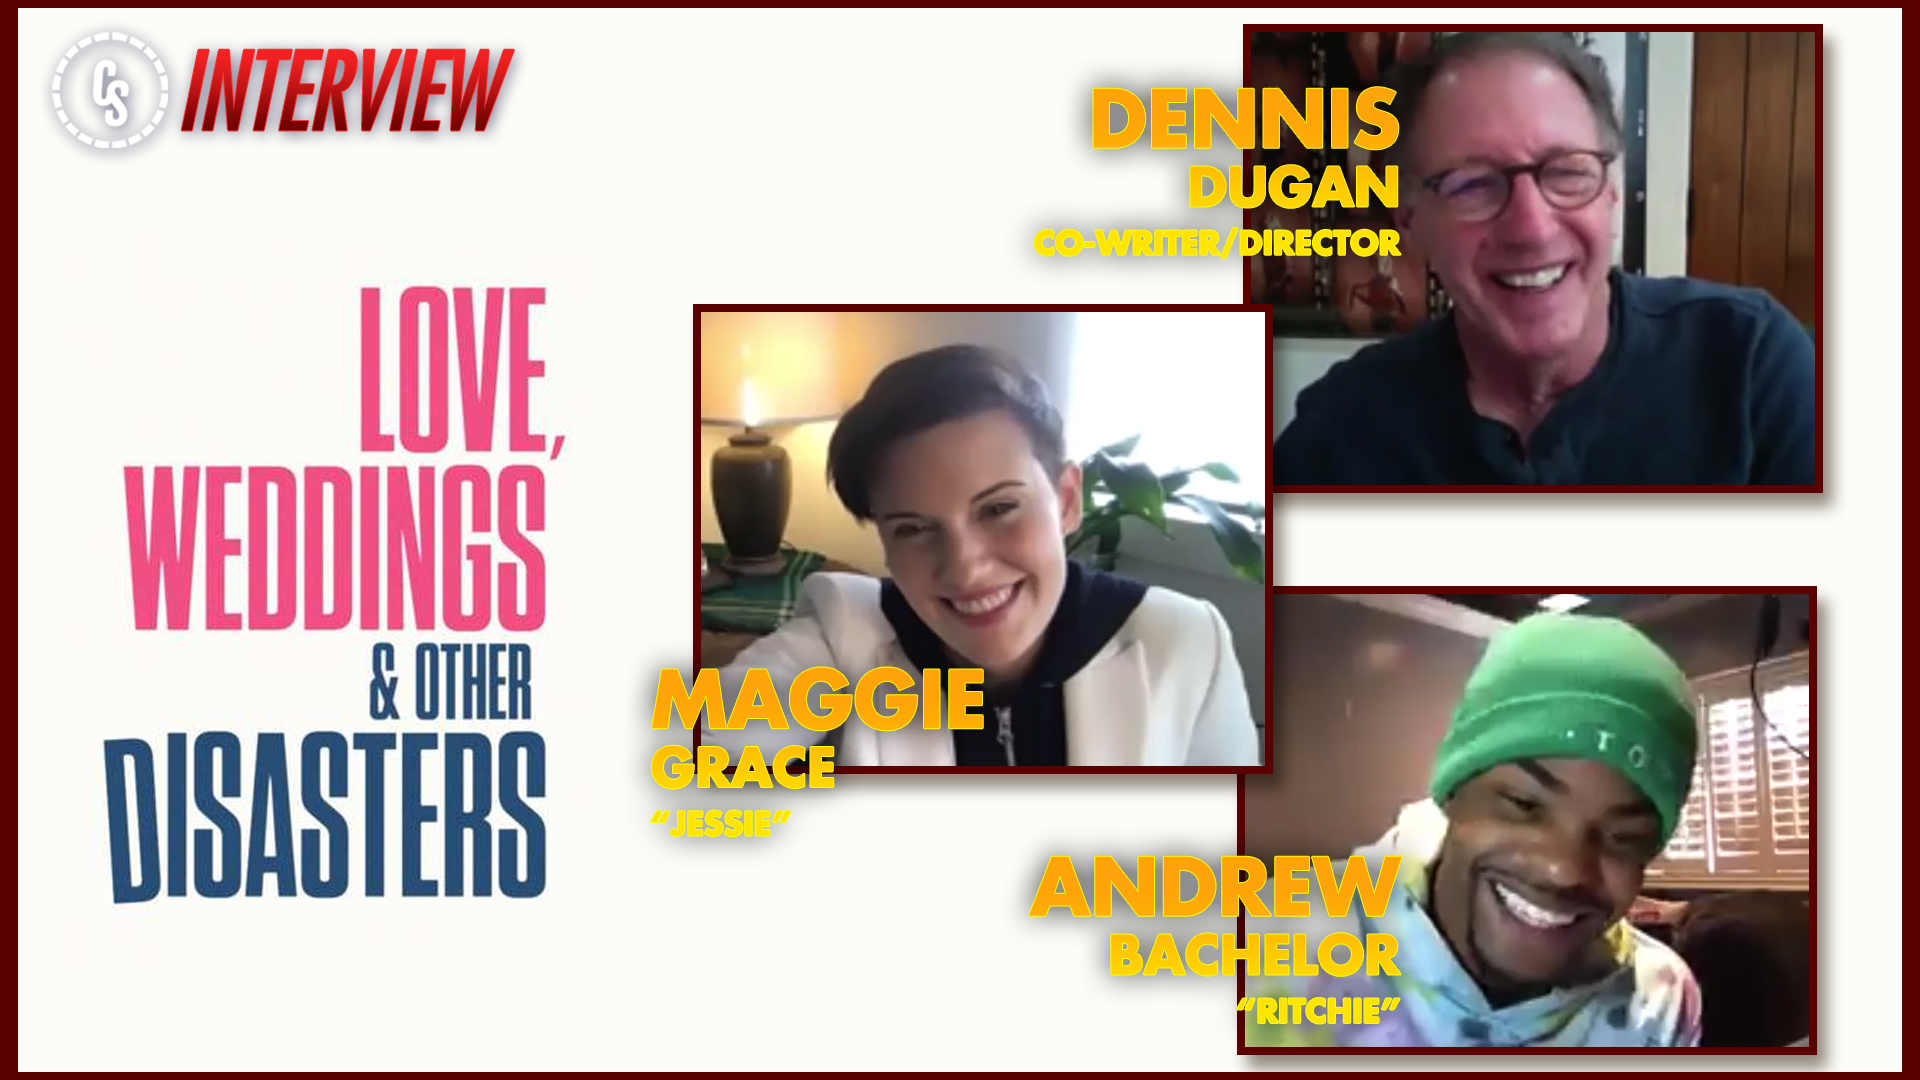 CS Video: Love, Weddings & Other Disasters Interview With Dugan, Grace & Bachelor